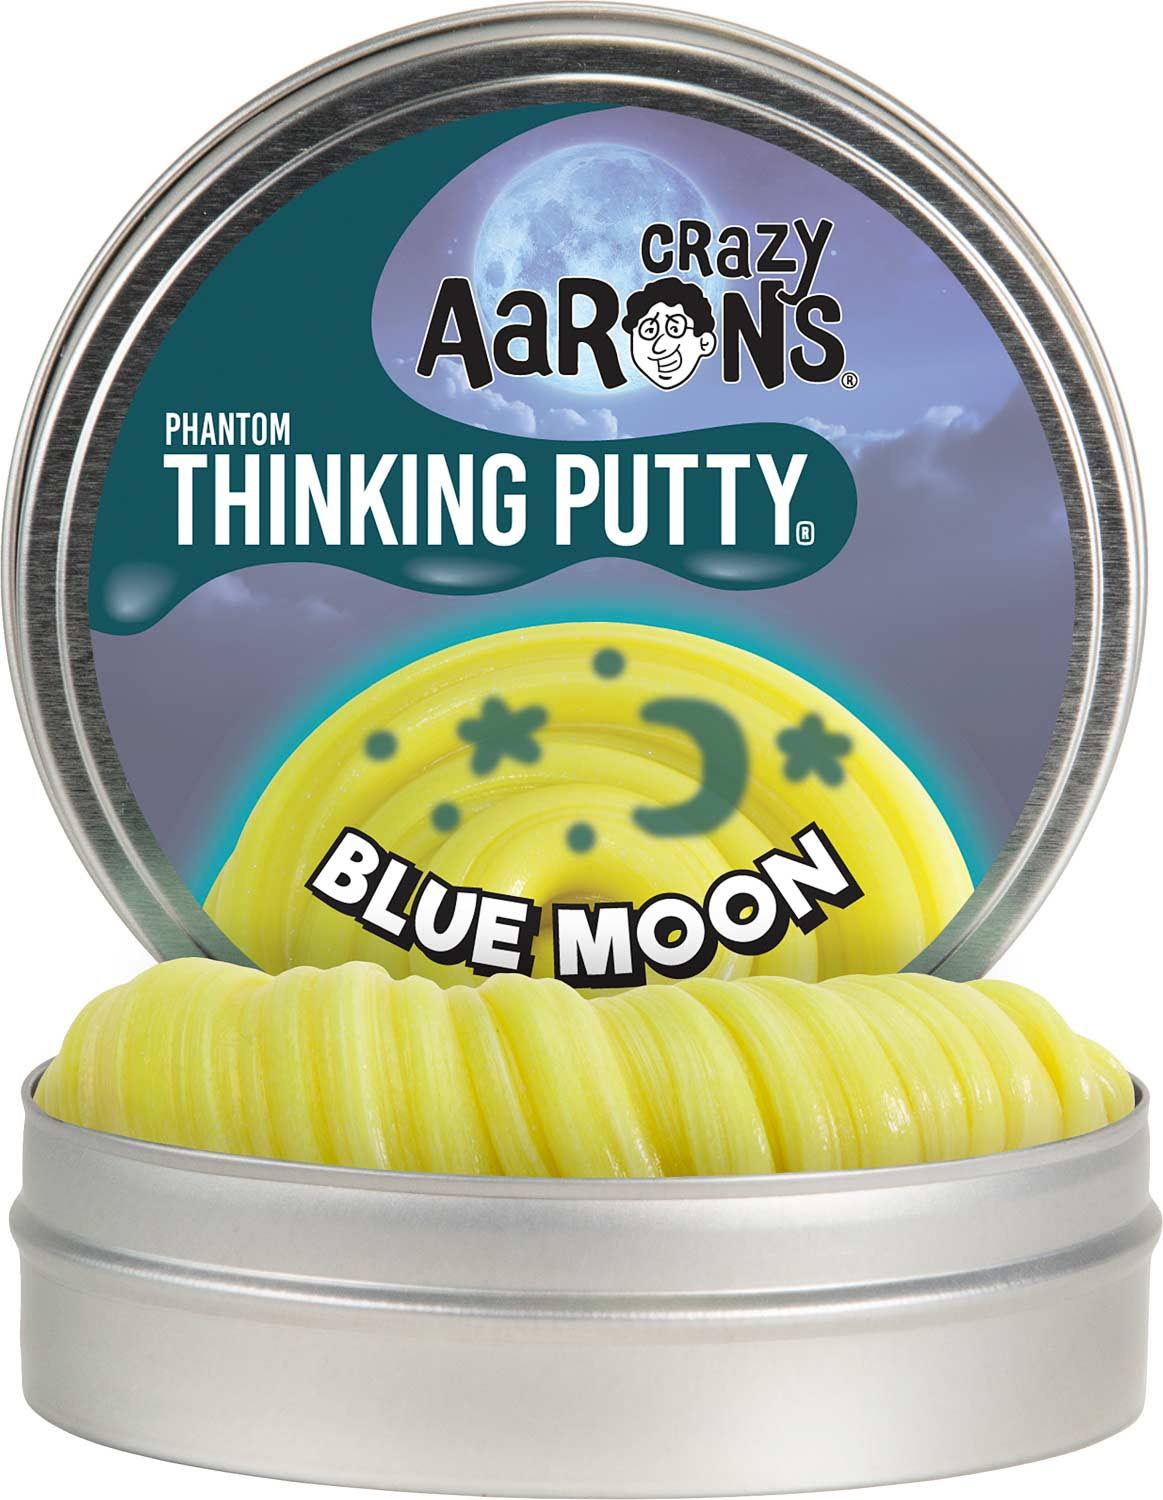 Crazy Aaron's Thinking Putty Blue Moon